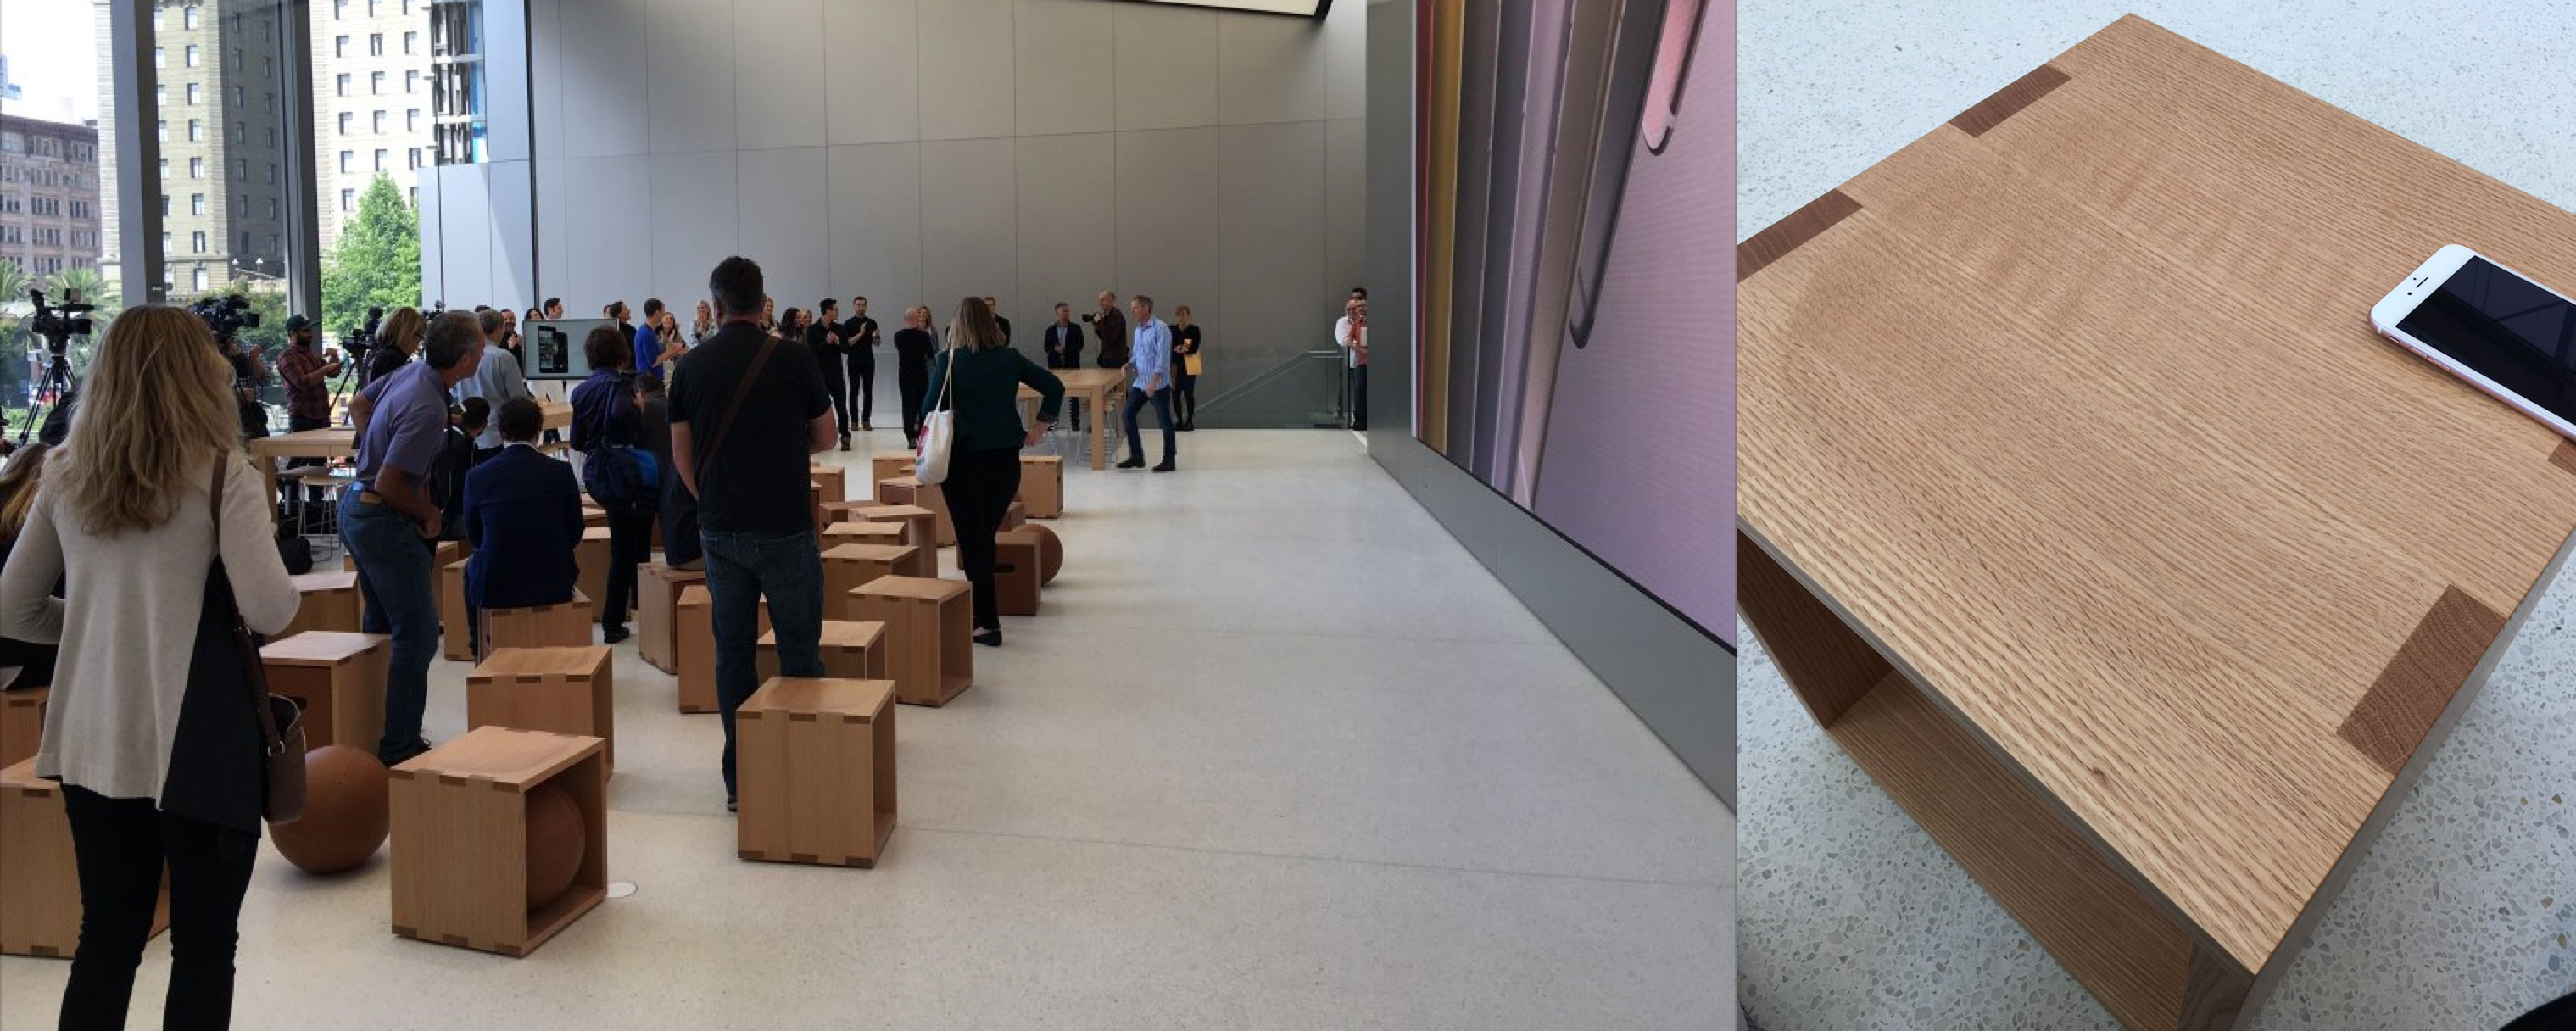 Apple-store-union-square-stools